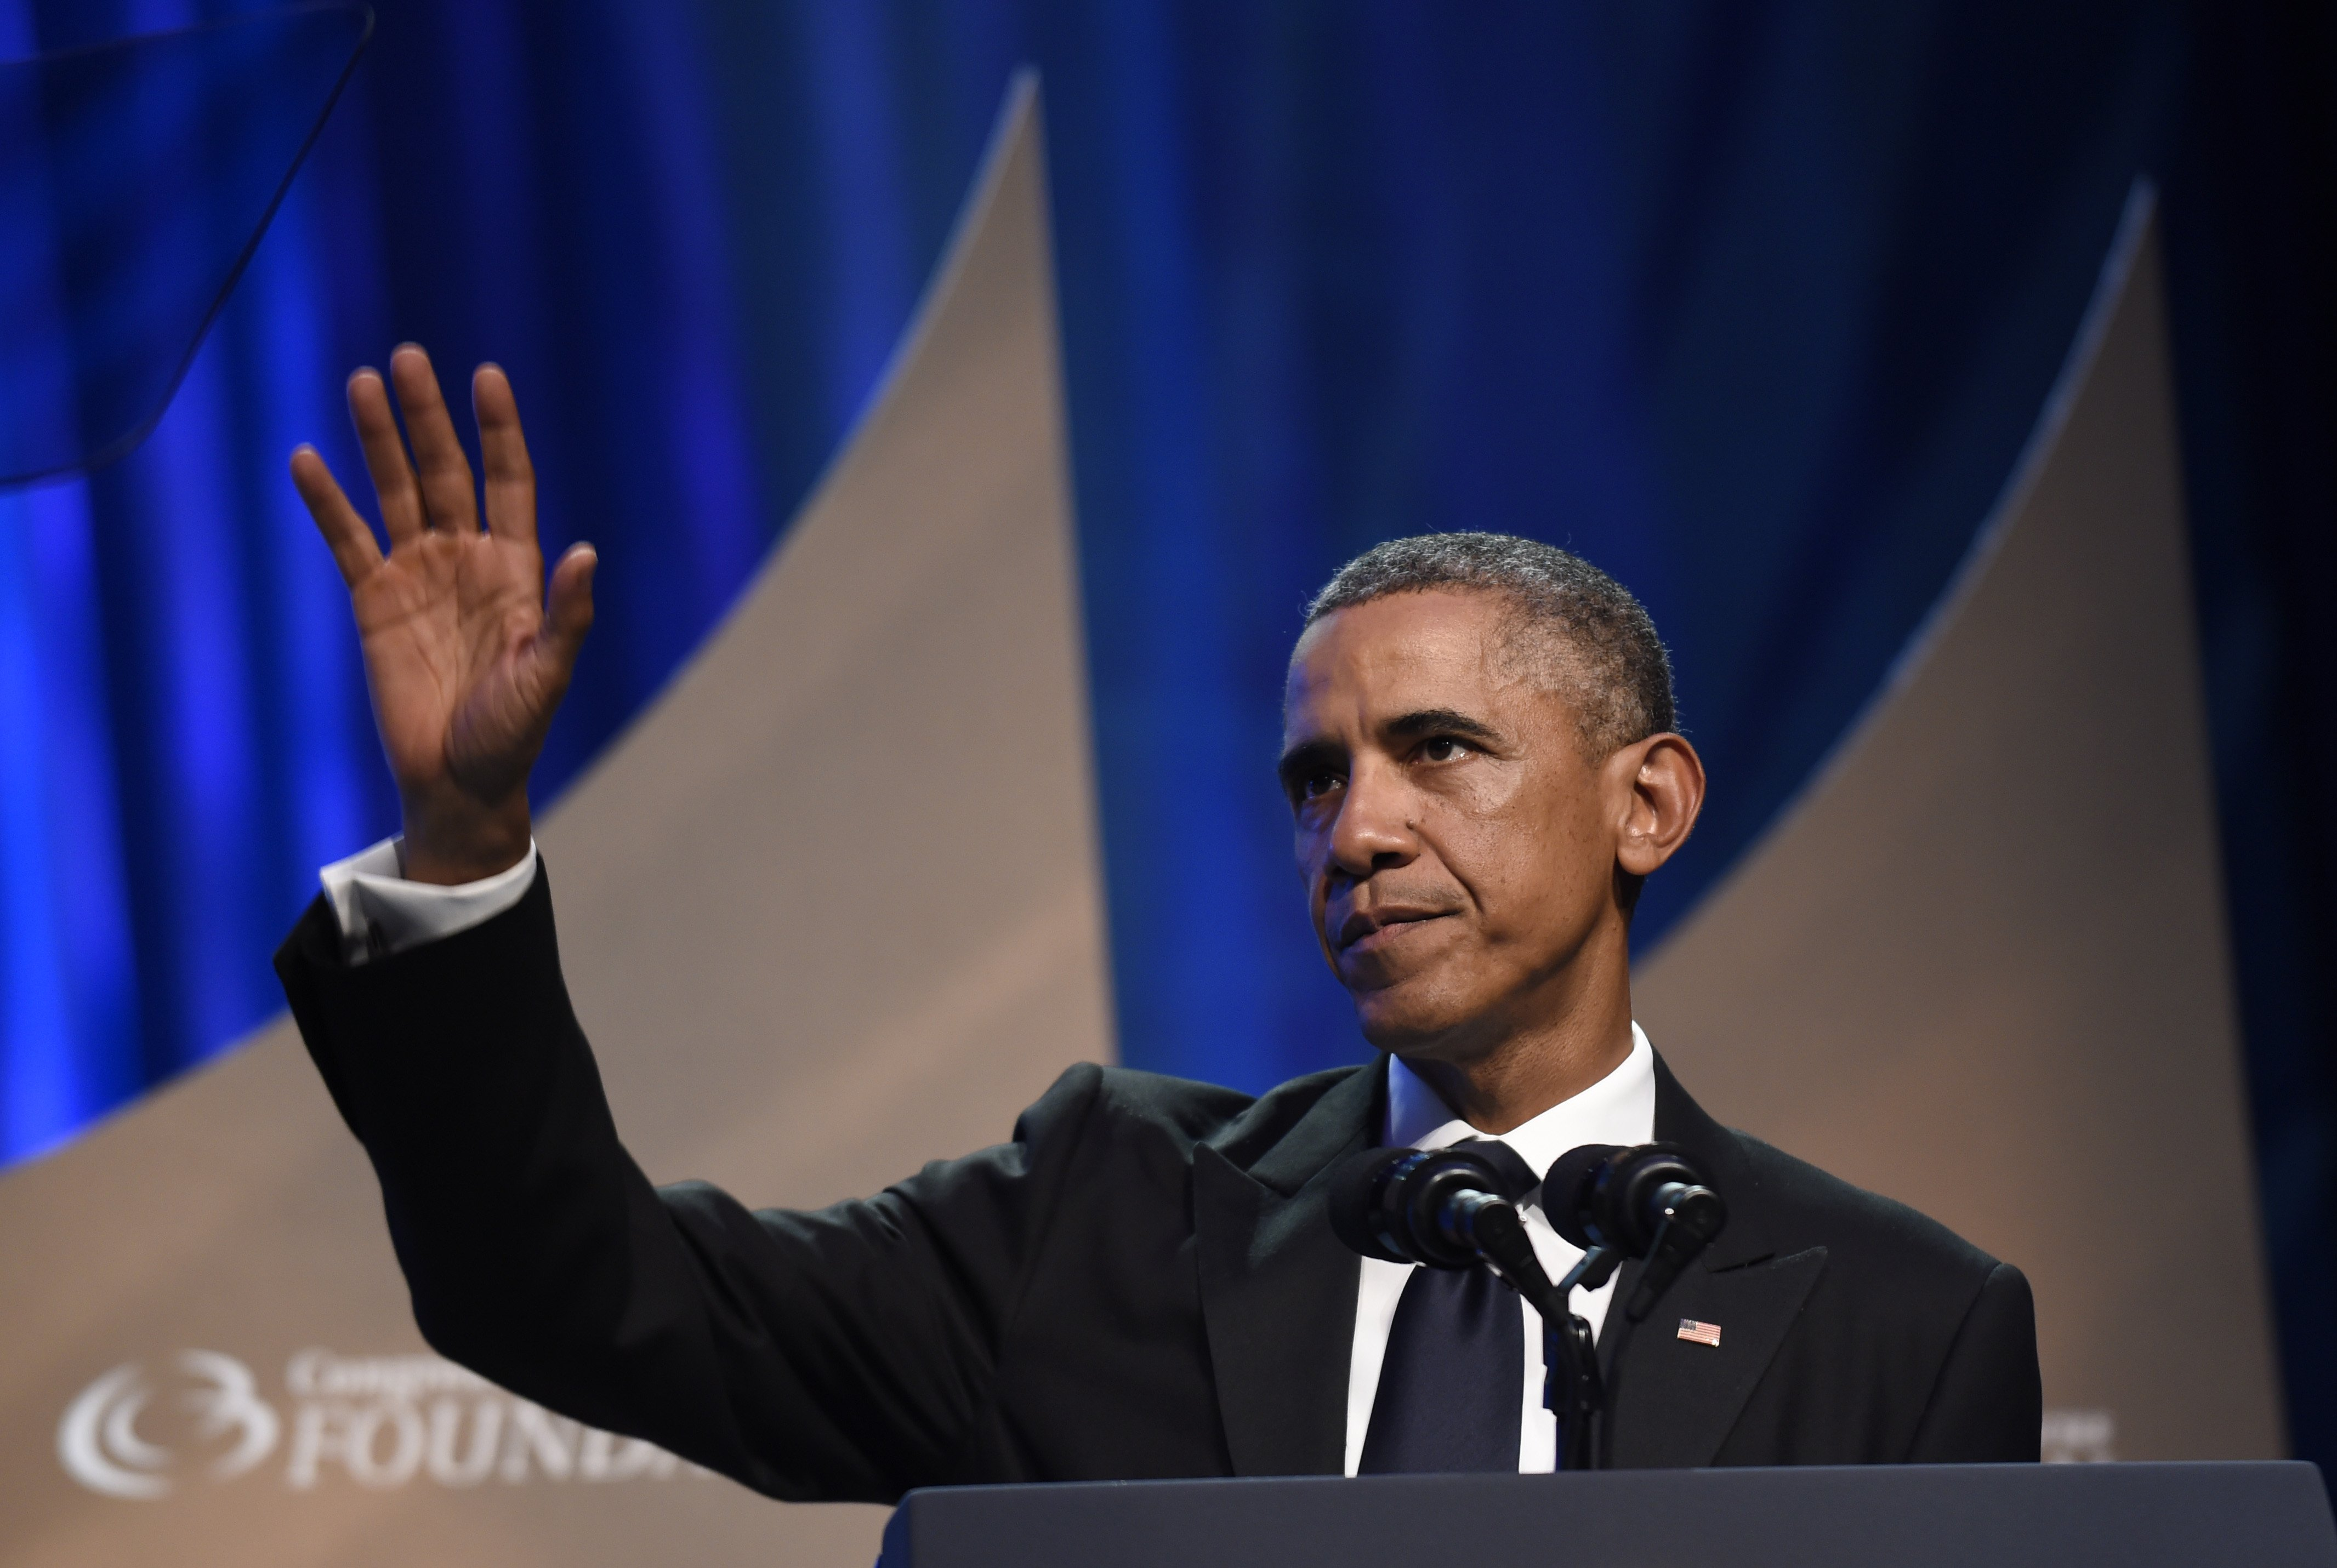 President Barack Obama waves to the crowd after speaking at the Congressional Black Caucus Foundation''s 44th Annual Legislative Conference Phoenix Awards Dinner in Washington, D.C., on Sept. 27, 2014